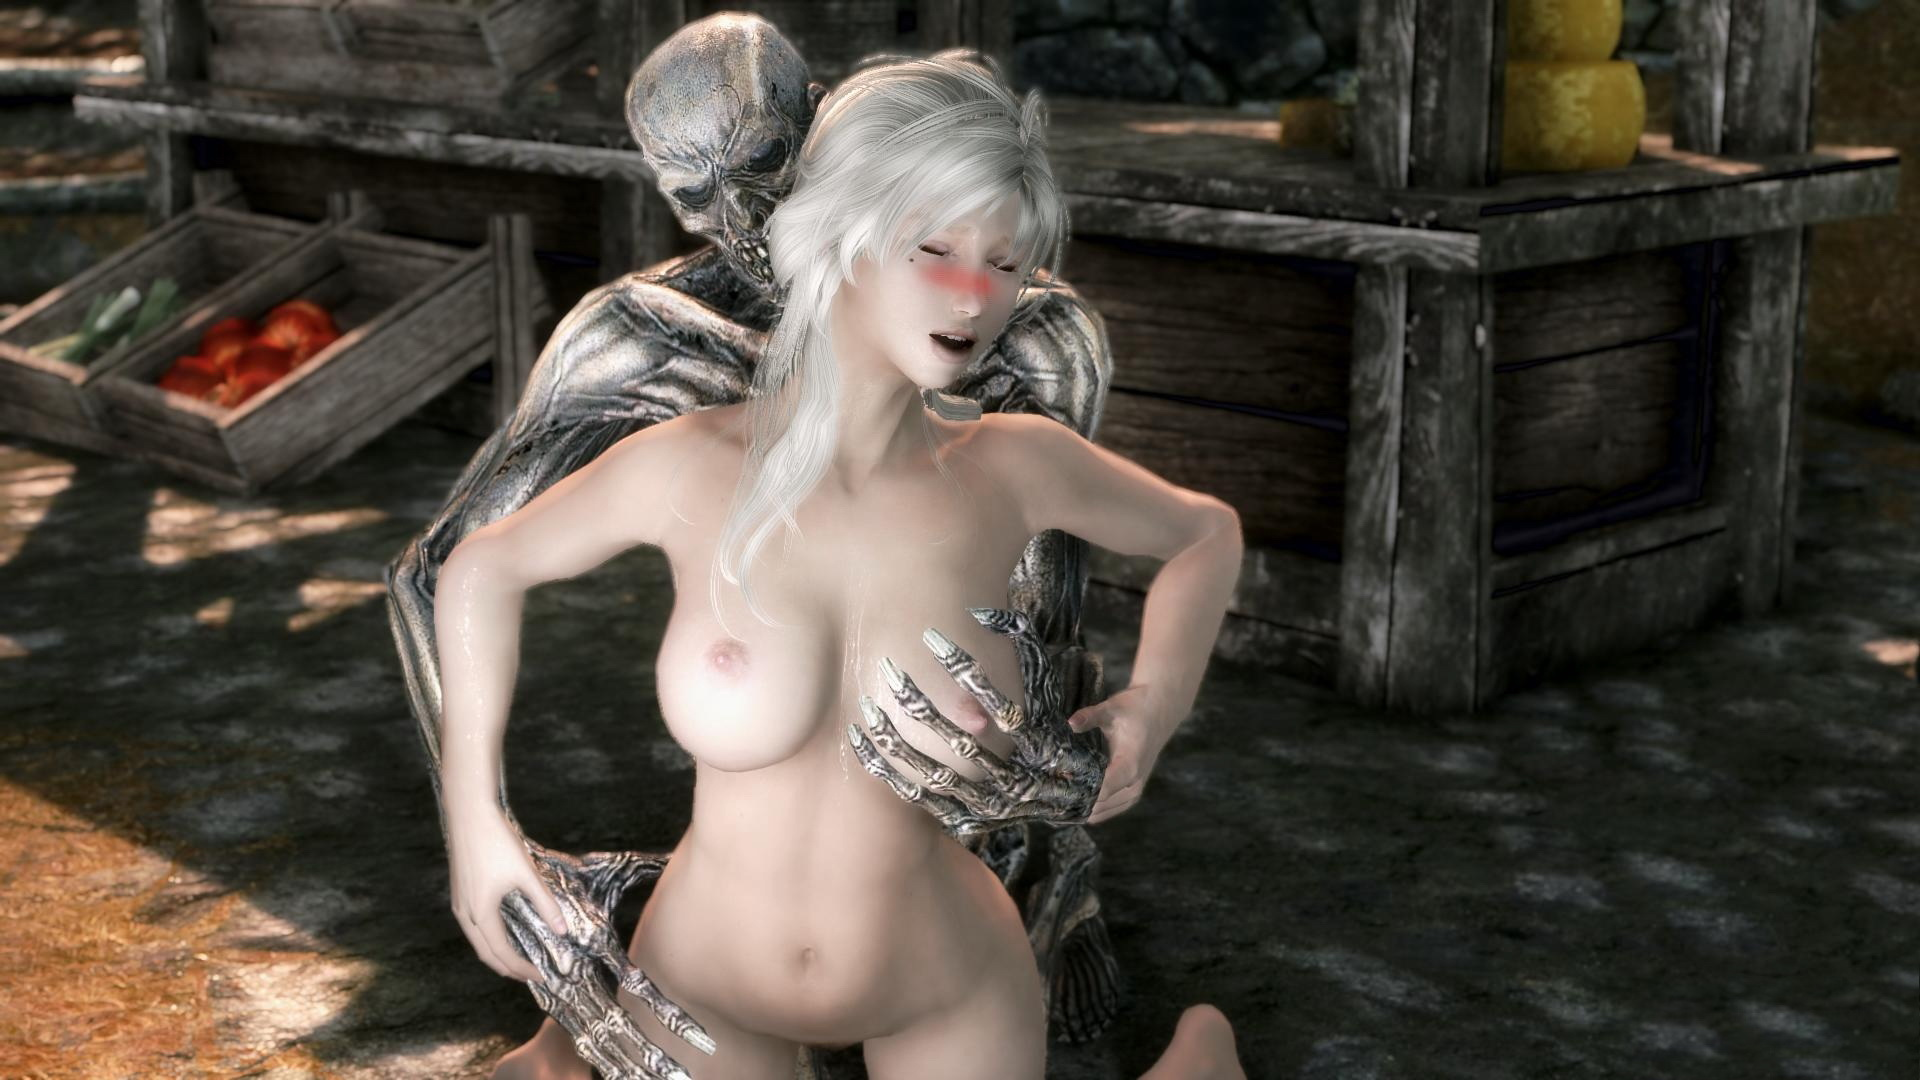 Orc porn fantasy naked images